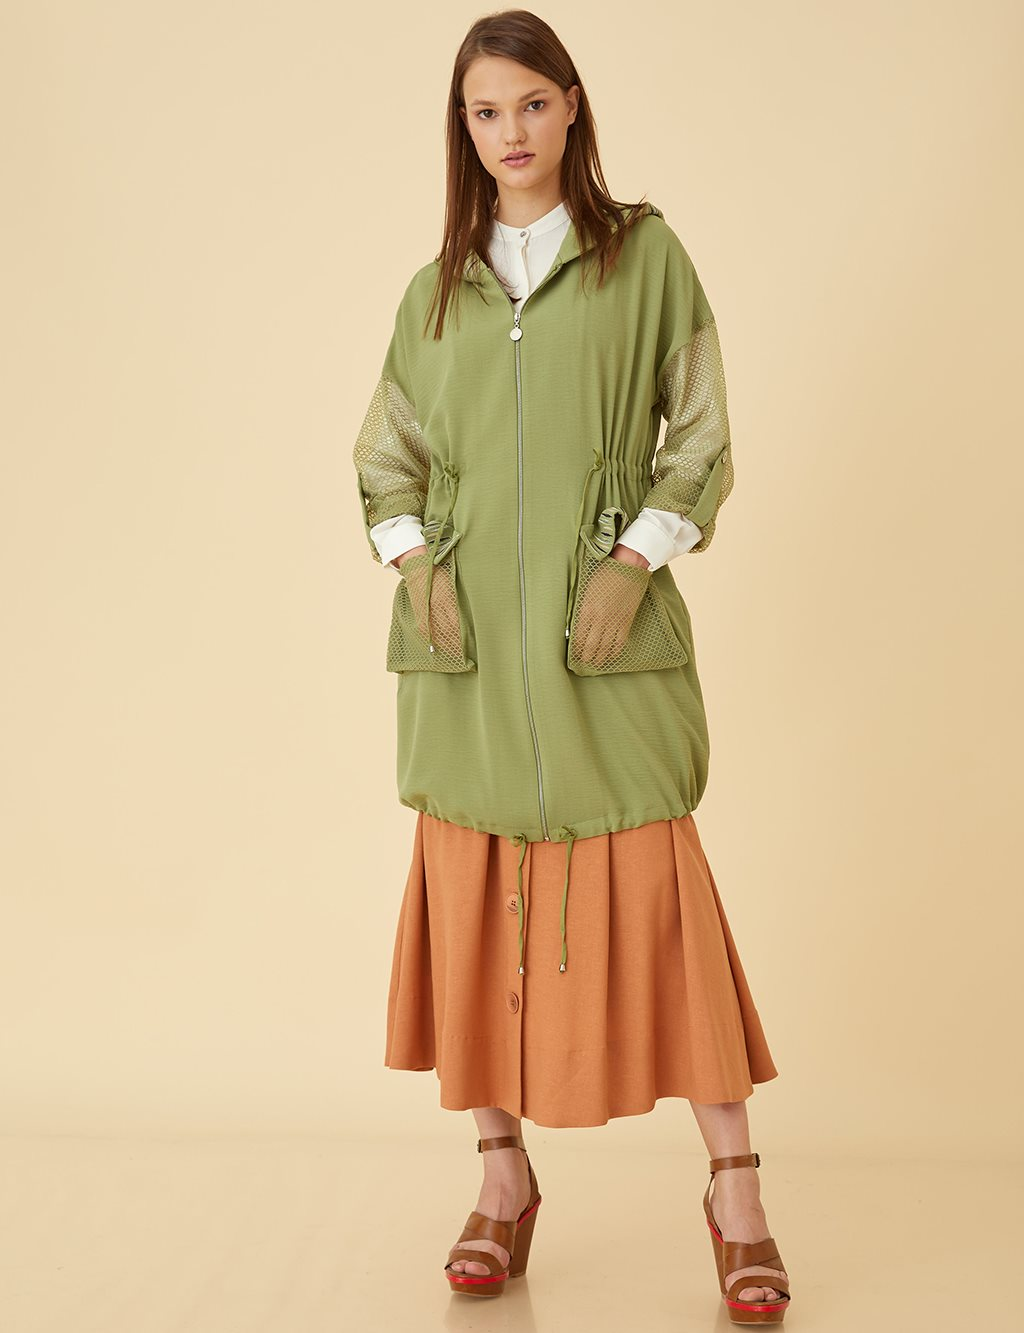 Pocket Detailed Top With Hood B9 25129 Khaki